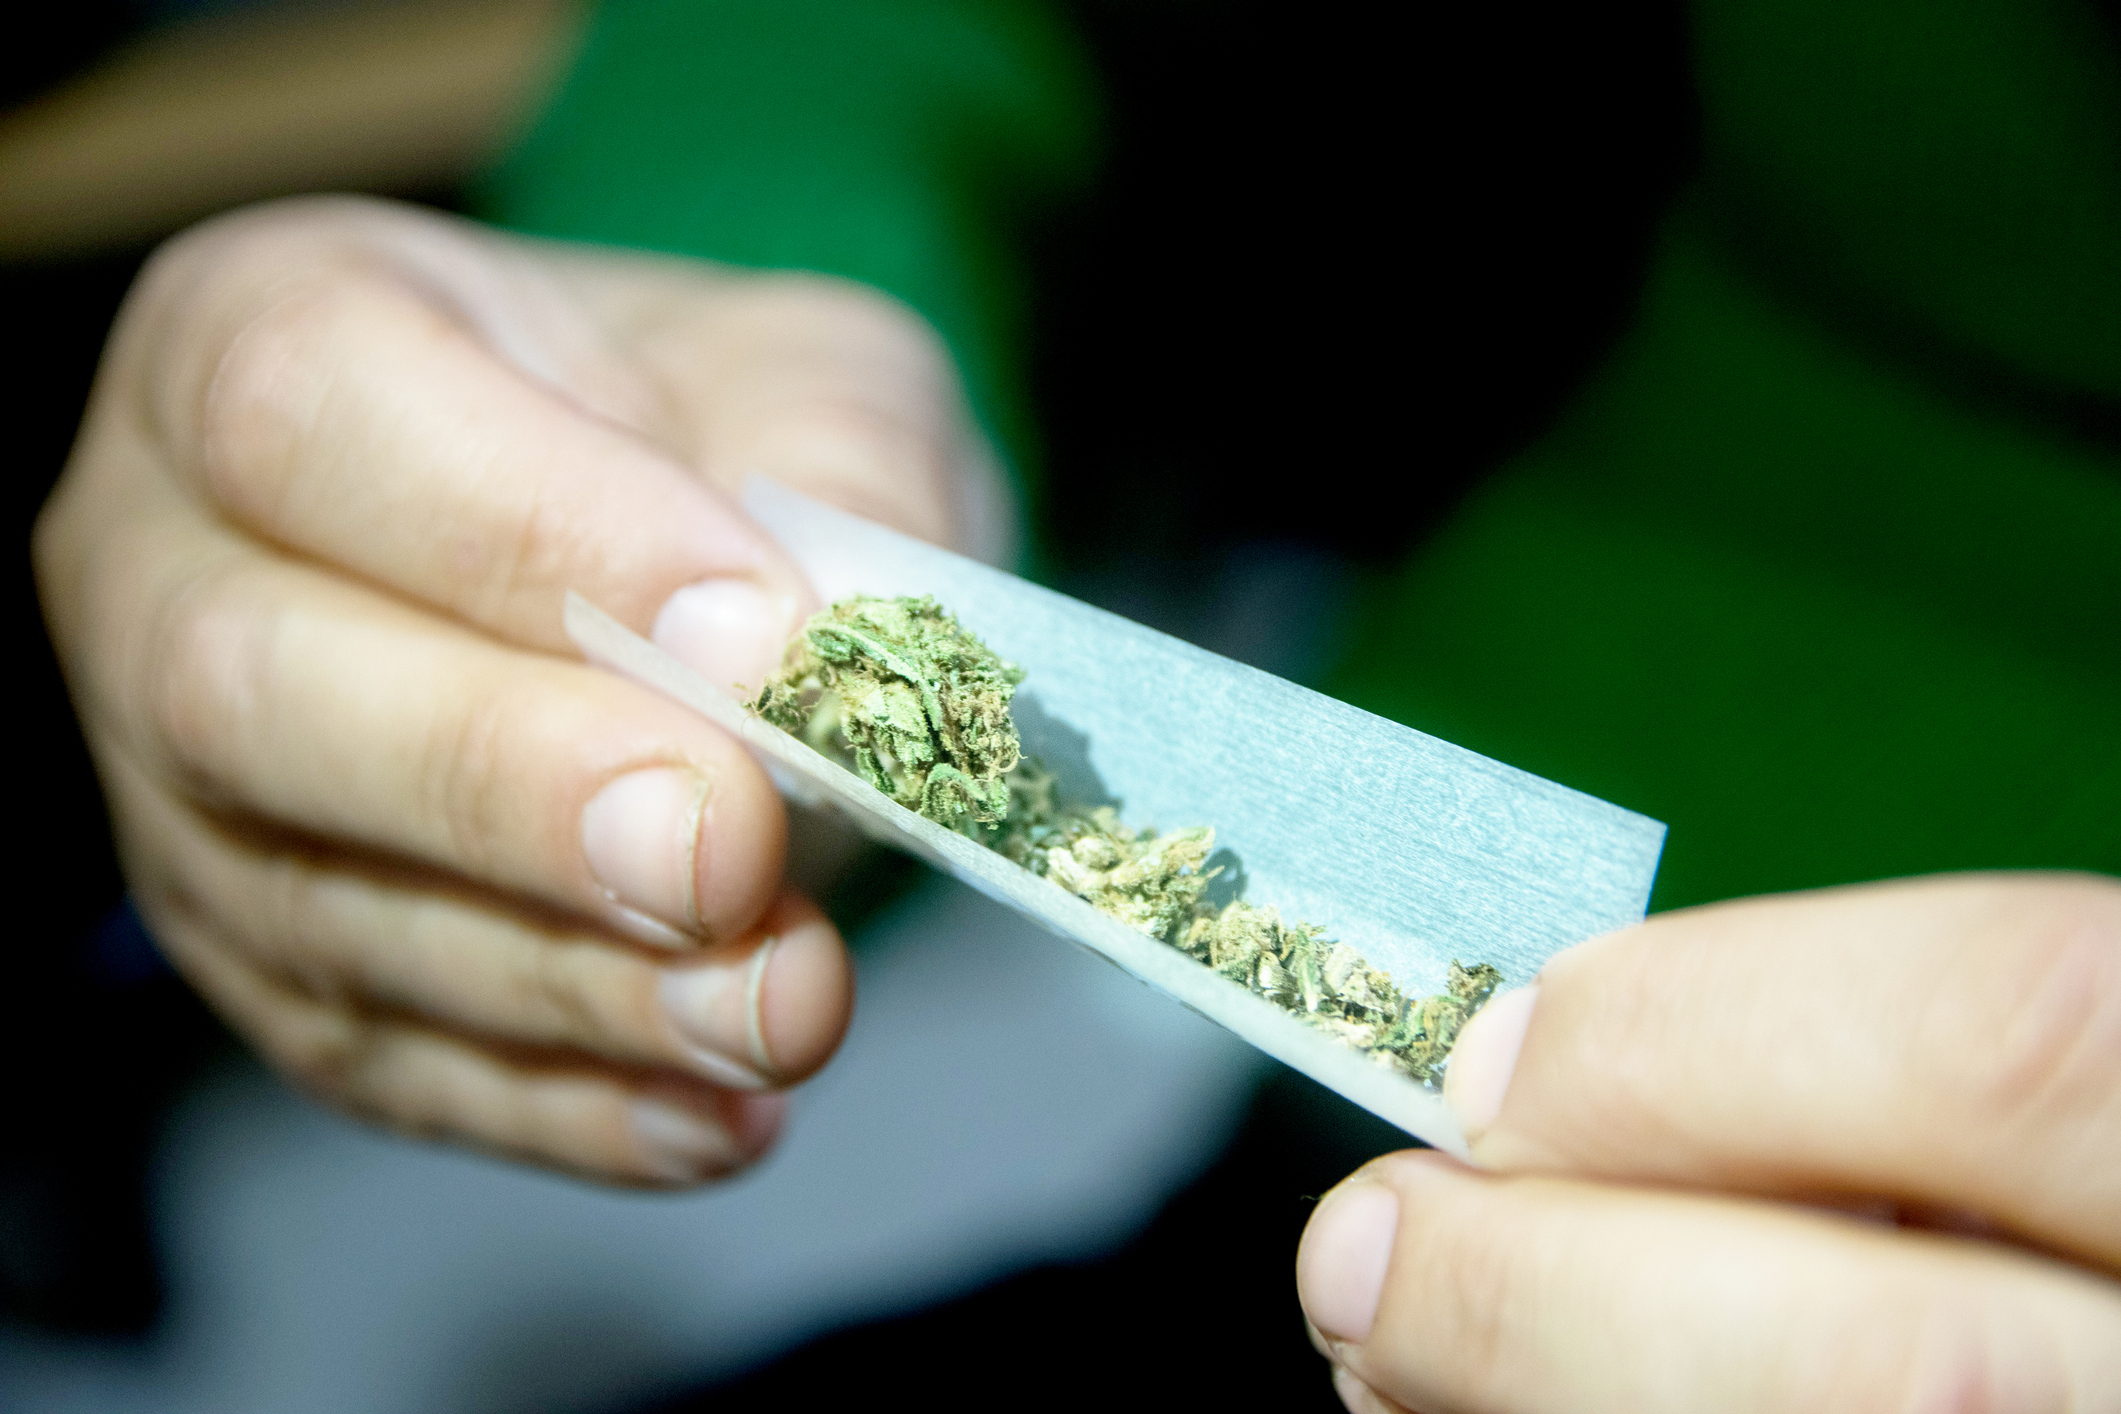 Article image for Canberrans can now use and possess cannabis under ACT's new laws